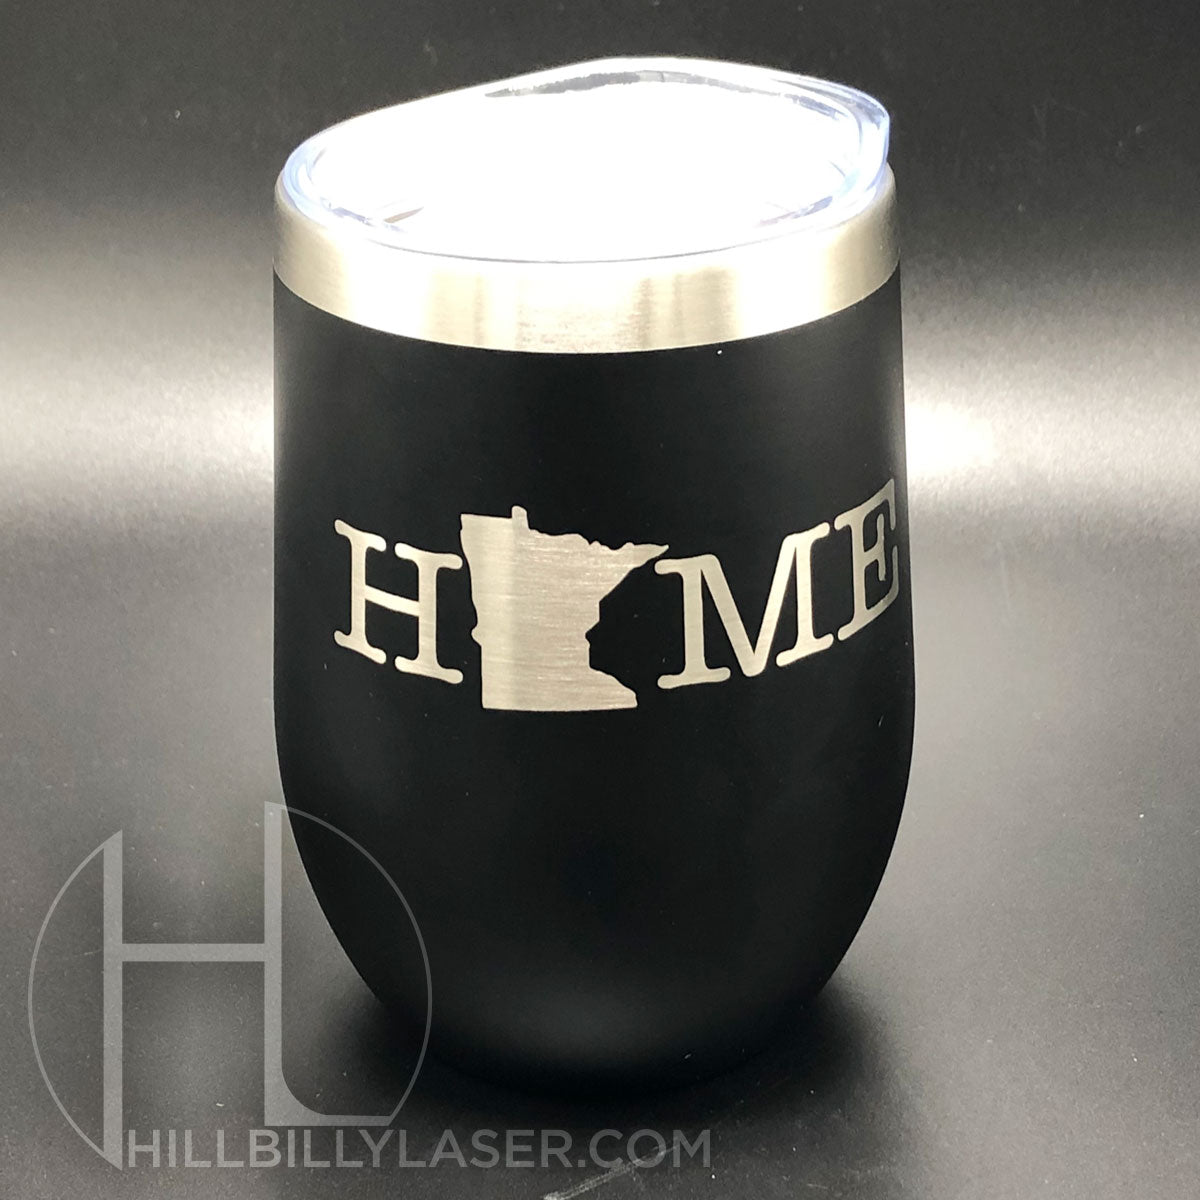 Stemless Stainless Wine Glass - Hillbilly Laser